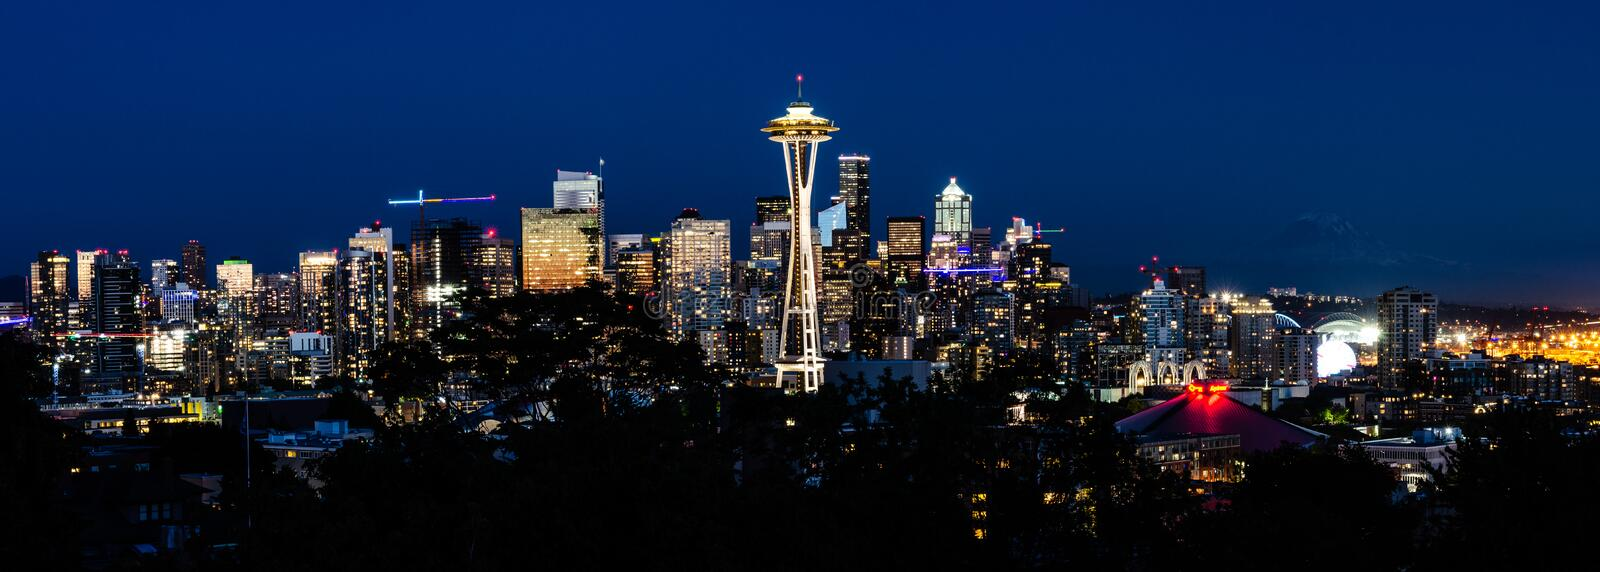 Panorama da skyline de Seattle na noite fotos de stock